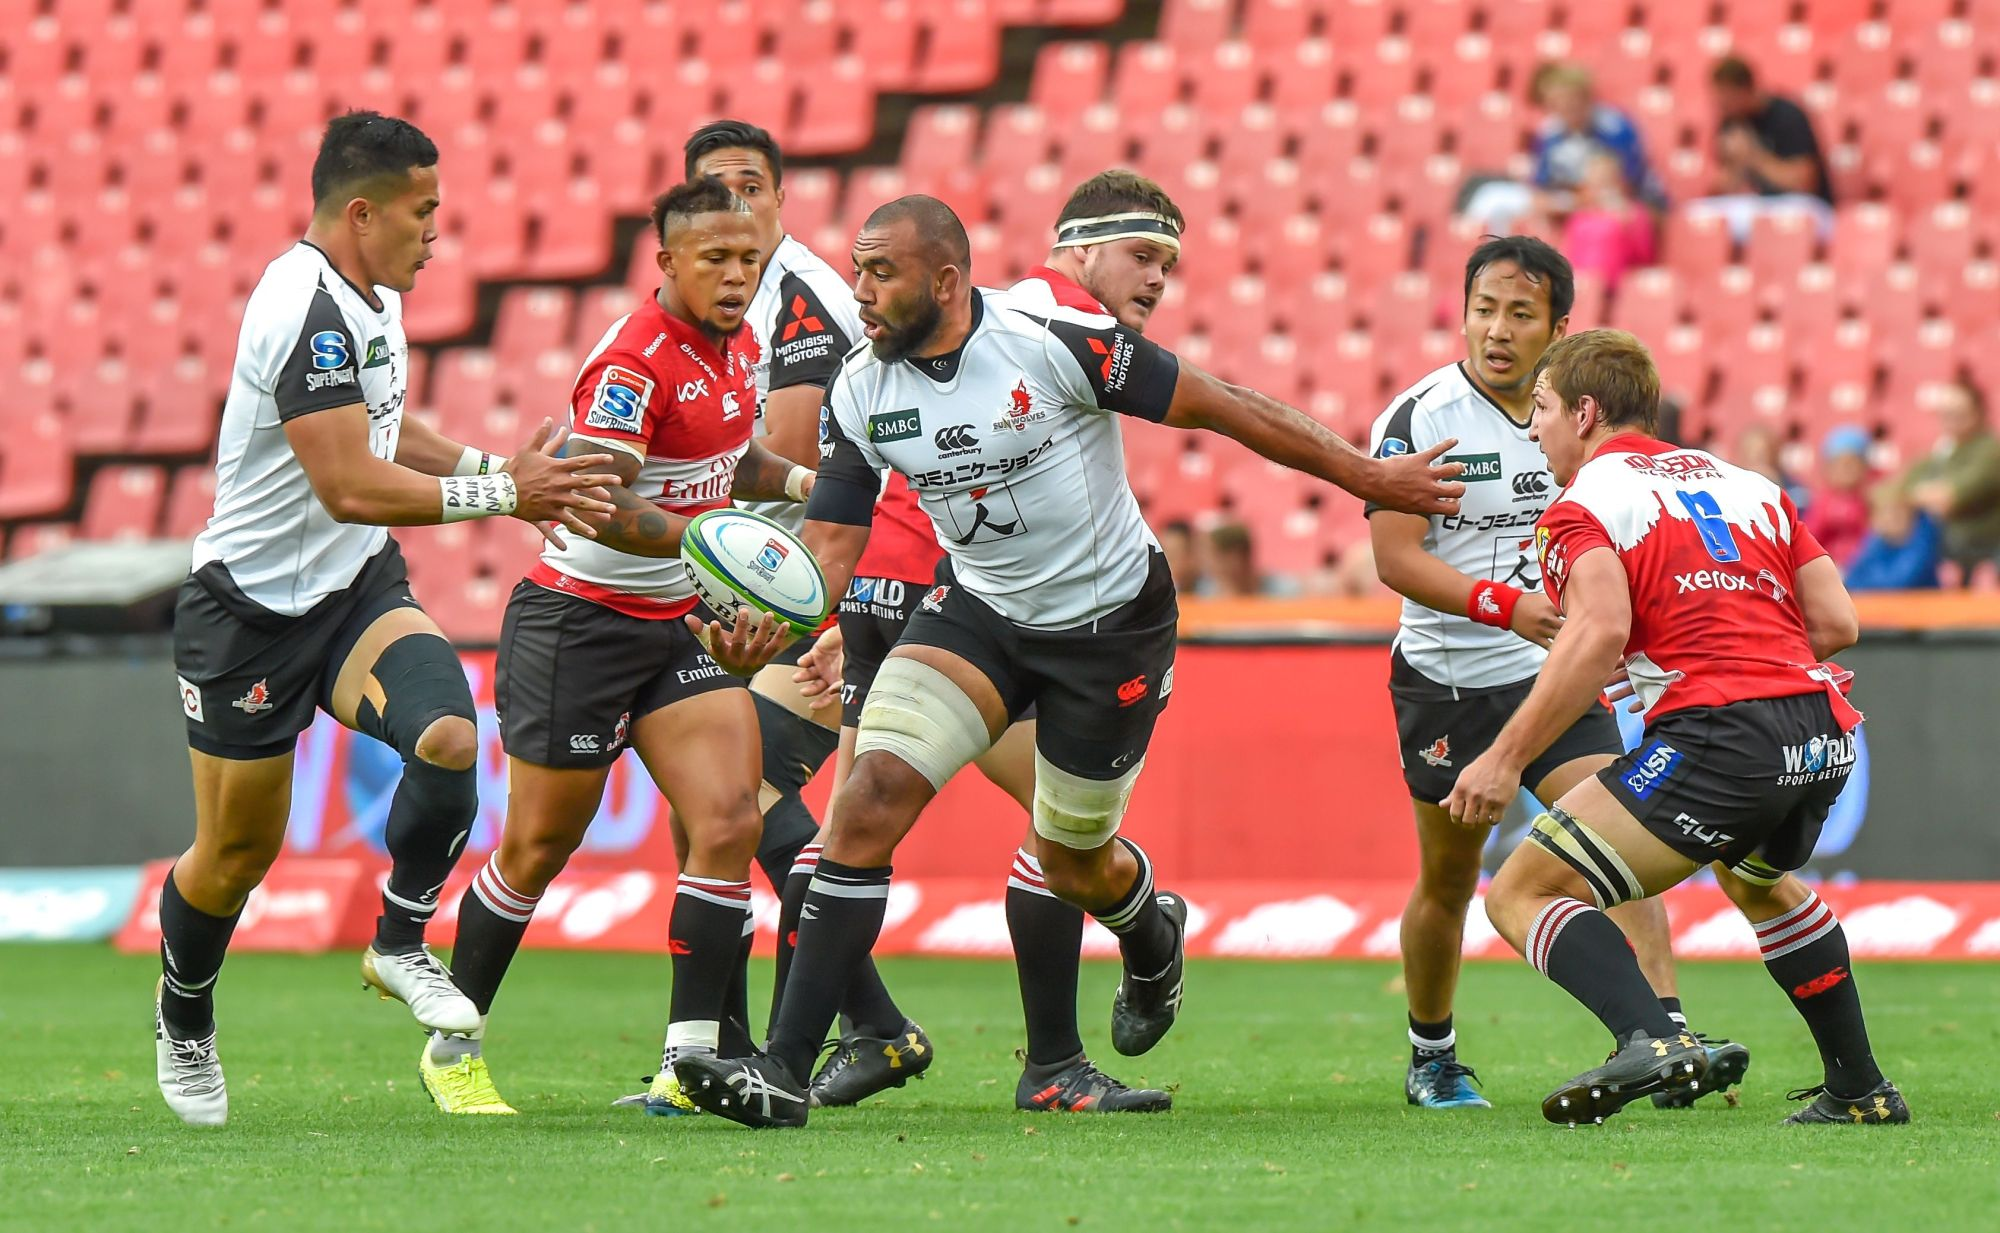 The Sunwolves' Michael Leitch (center) prepares to get the ball to Hosea Saumaki (left) during their match against the Lions in Johannesburg on Saturday. The Lions won 40-38. | AFP-JIJI